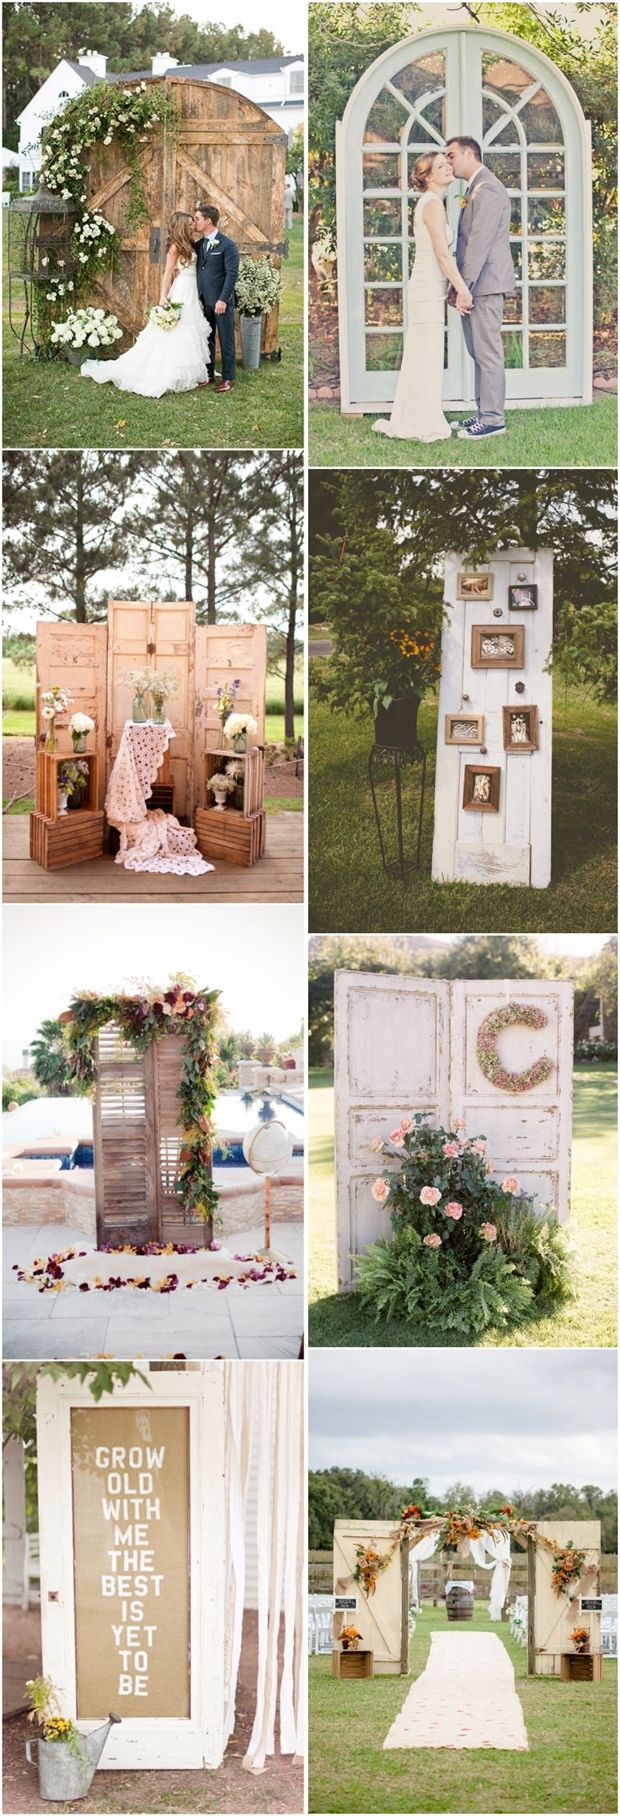 Rustic old door wedding ideas country outdoor wedding decors deer